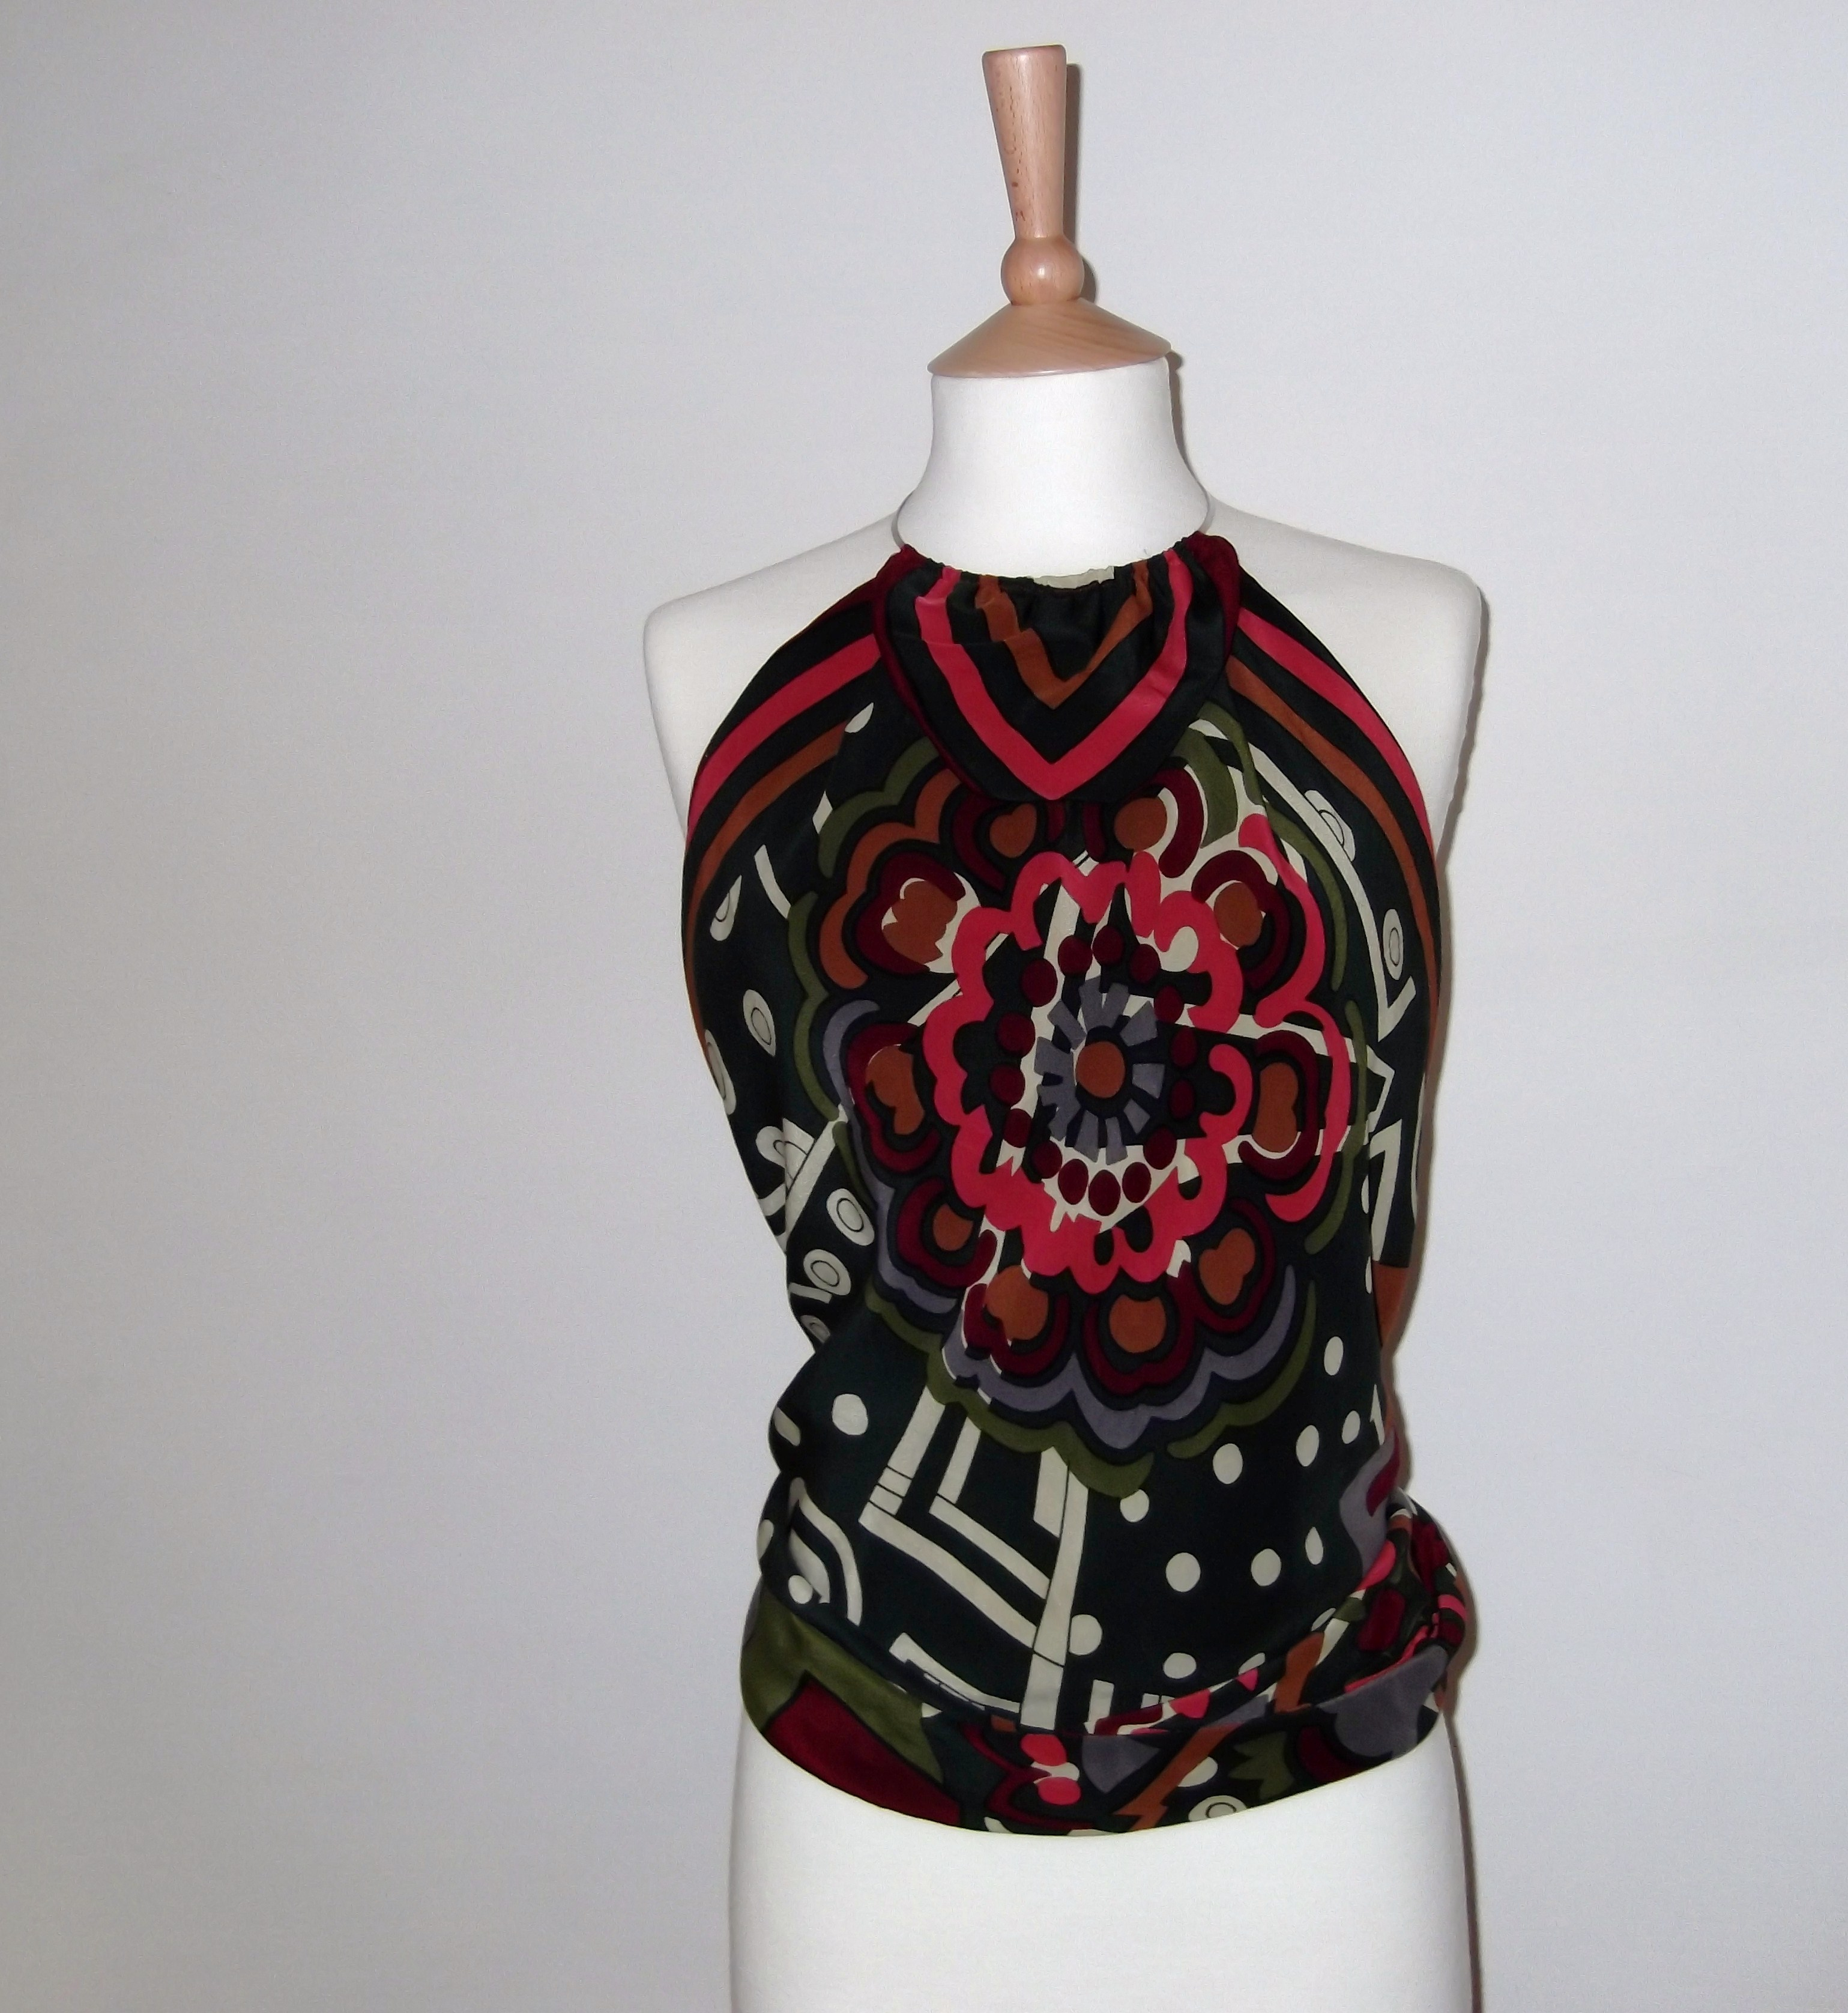 Top 5 front pink black retro Striking Vintage Scarf Tops